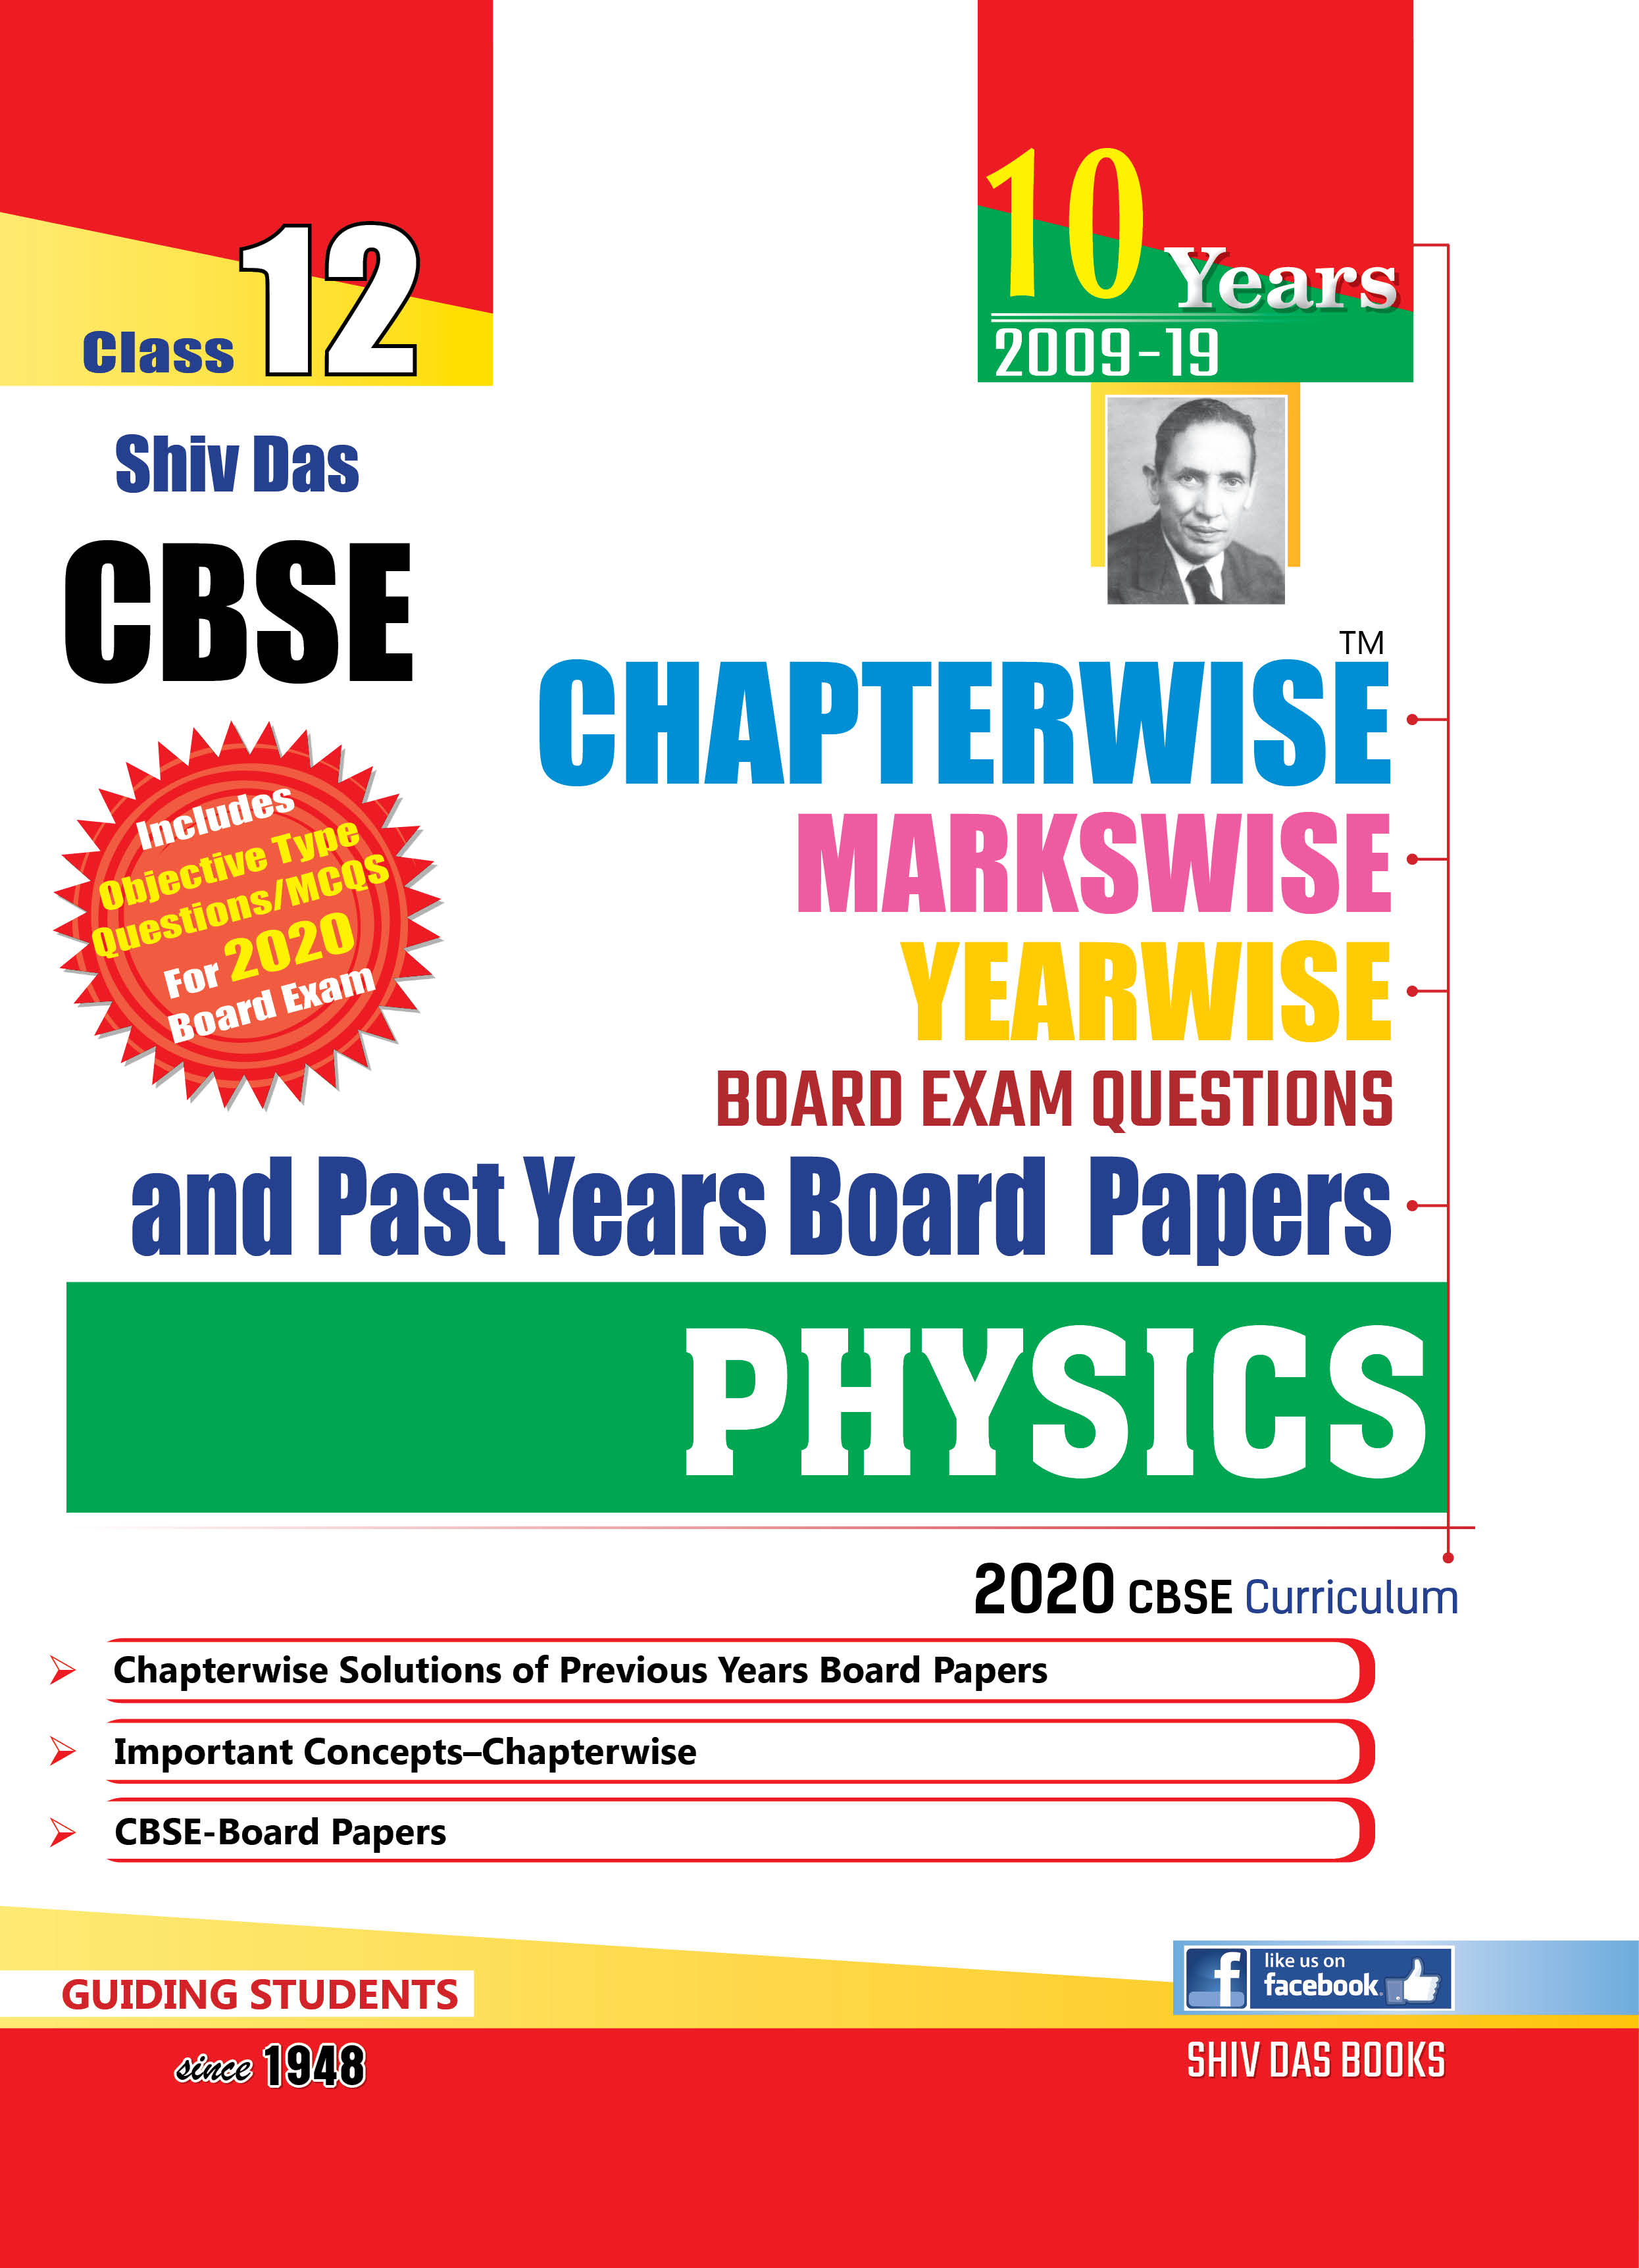 CBSE Chapterwise Markswise Yearwise Board Exam Questions & Past Years Board Papers For Class 12 Physics (2020 Board Exam Edition)